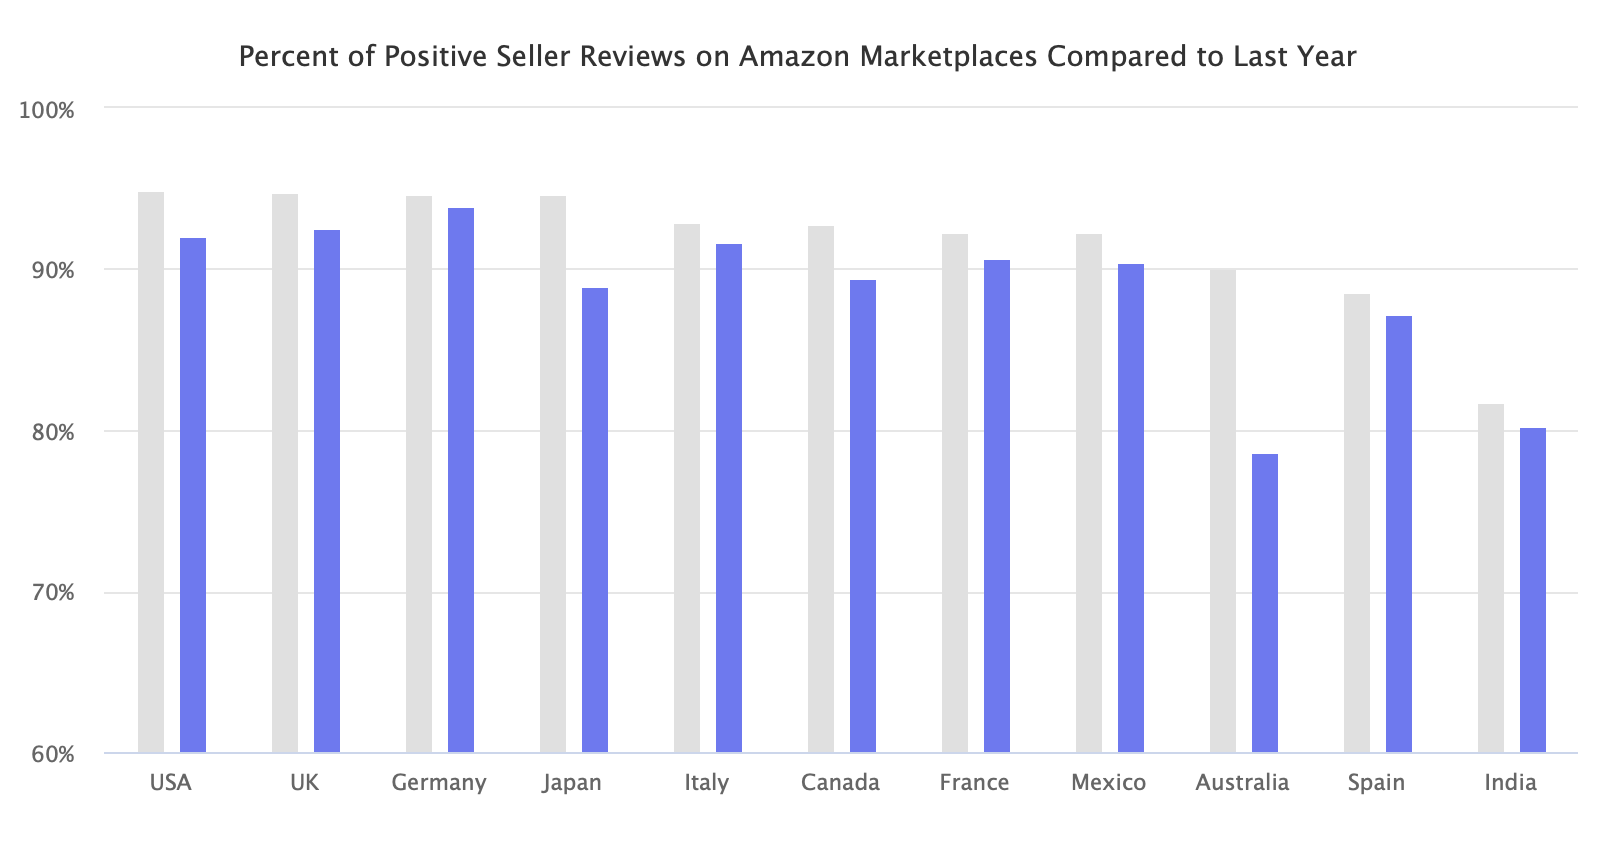 Percent of Positive Seller Reviews on Amazon Marketplaces Compared to Last Year